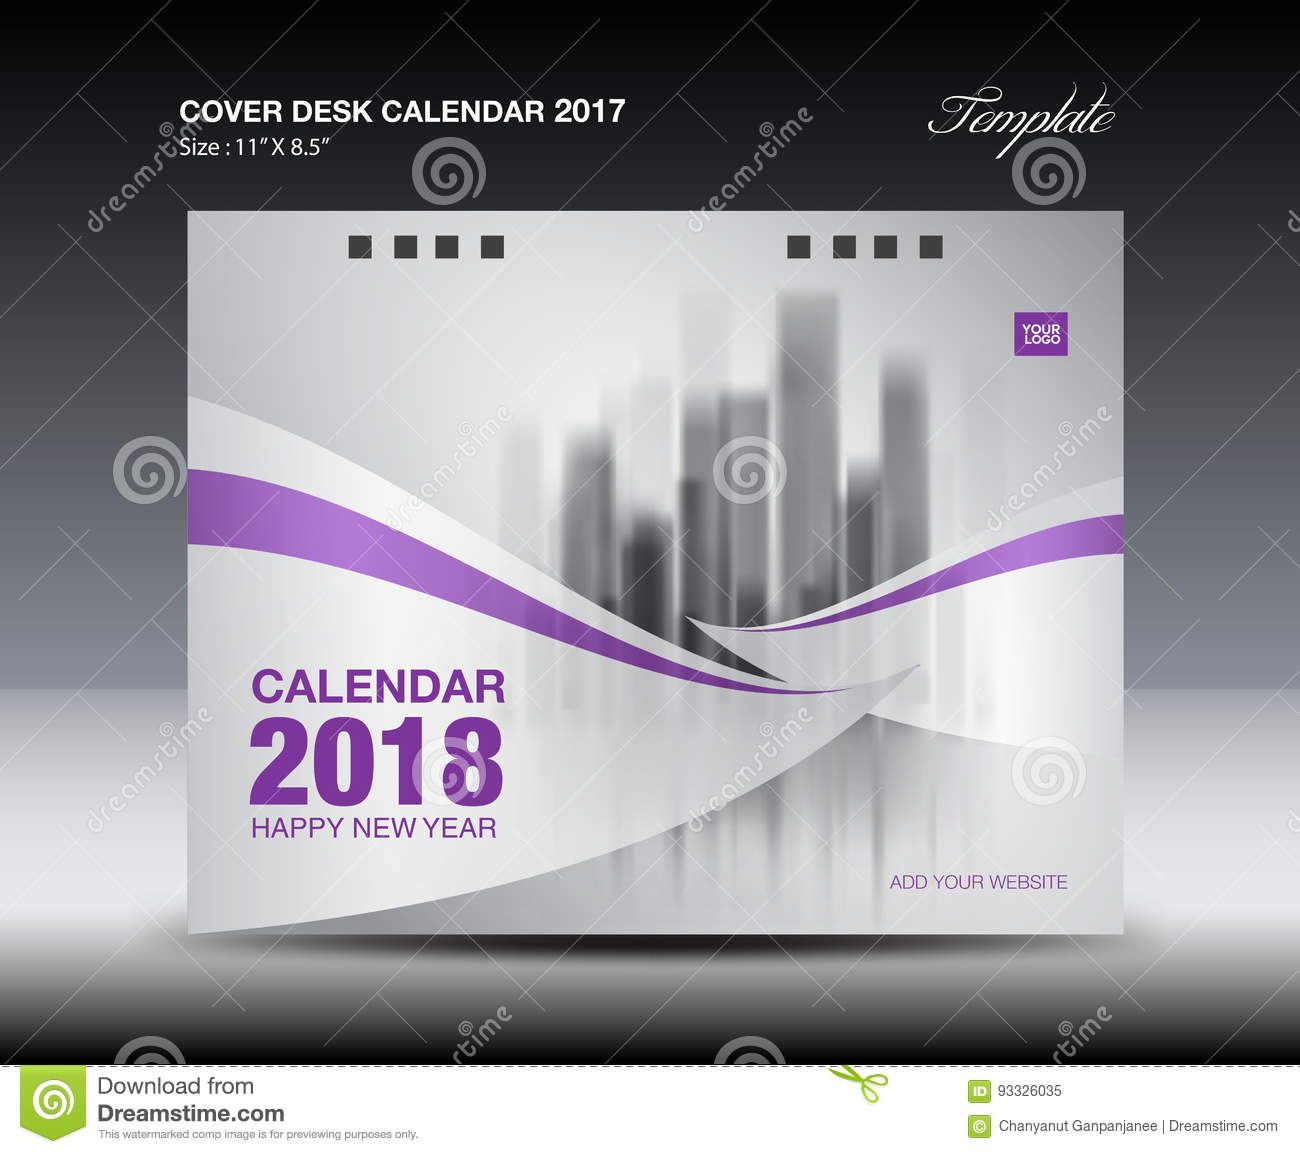 Calendar Cover Page Template : Purple cover desk calendar design flyer template